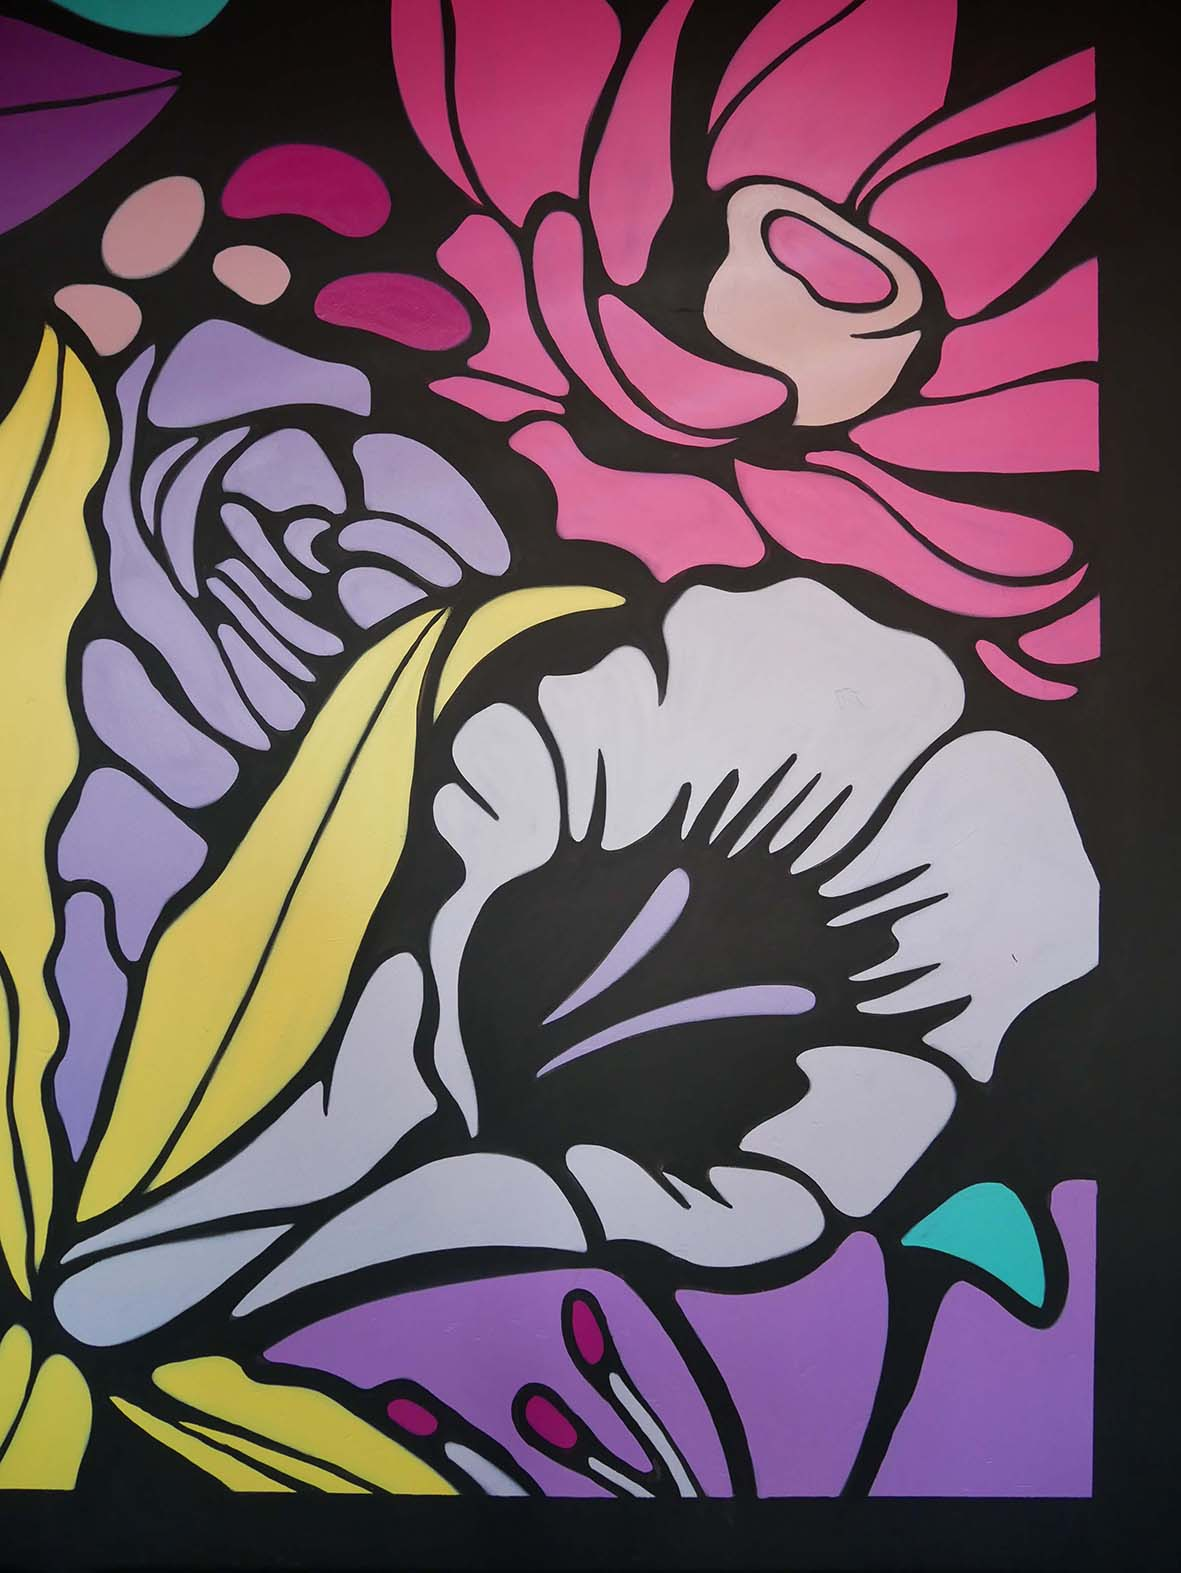 Nerone-queen-of-hoxton-painting-7